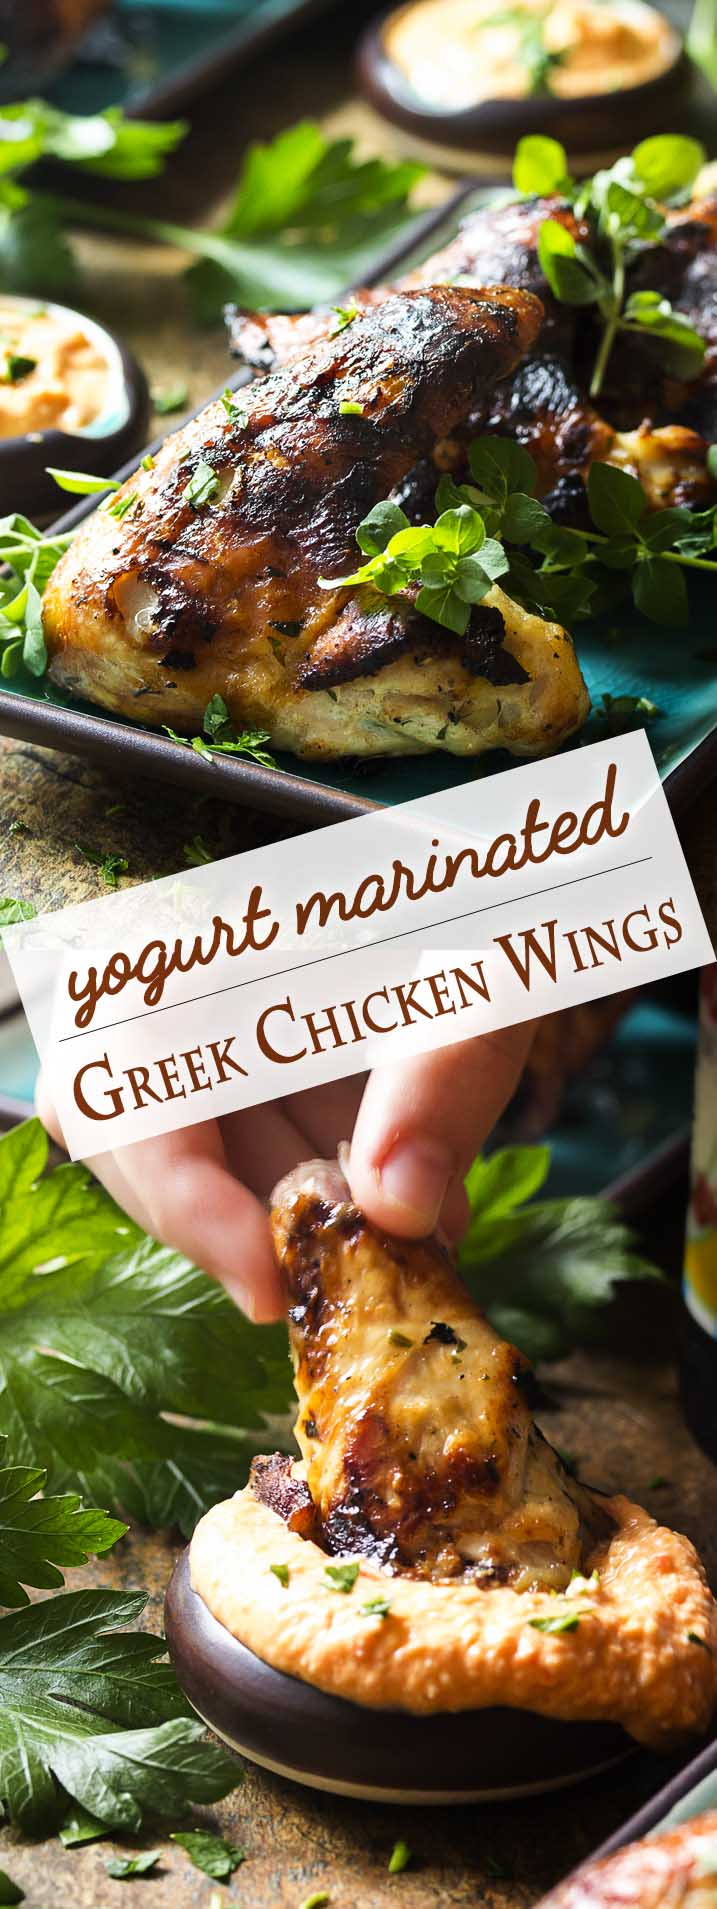 Yogurt marinated chicken wings are so flavorful, tender and juicy which makes these grilled Greek wings a fun and easy party food! Great by themselves or with a dipping sauce, like roasted pepper feta dip or tzatziki sauce. | justalittlebitofbacon.com